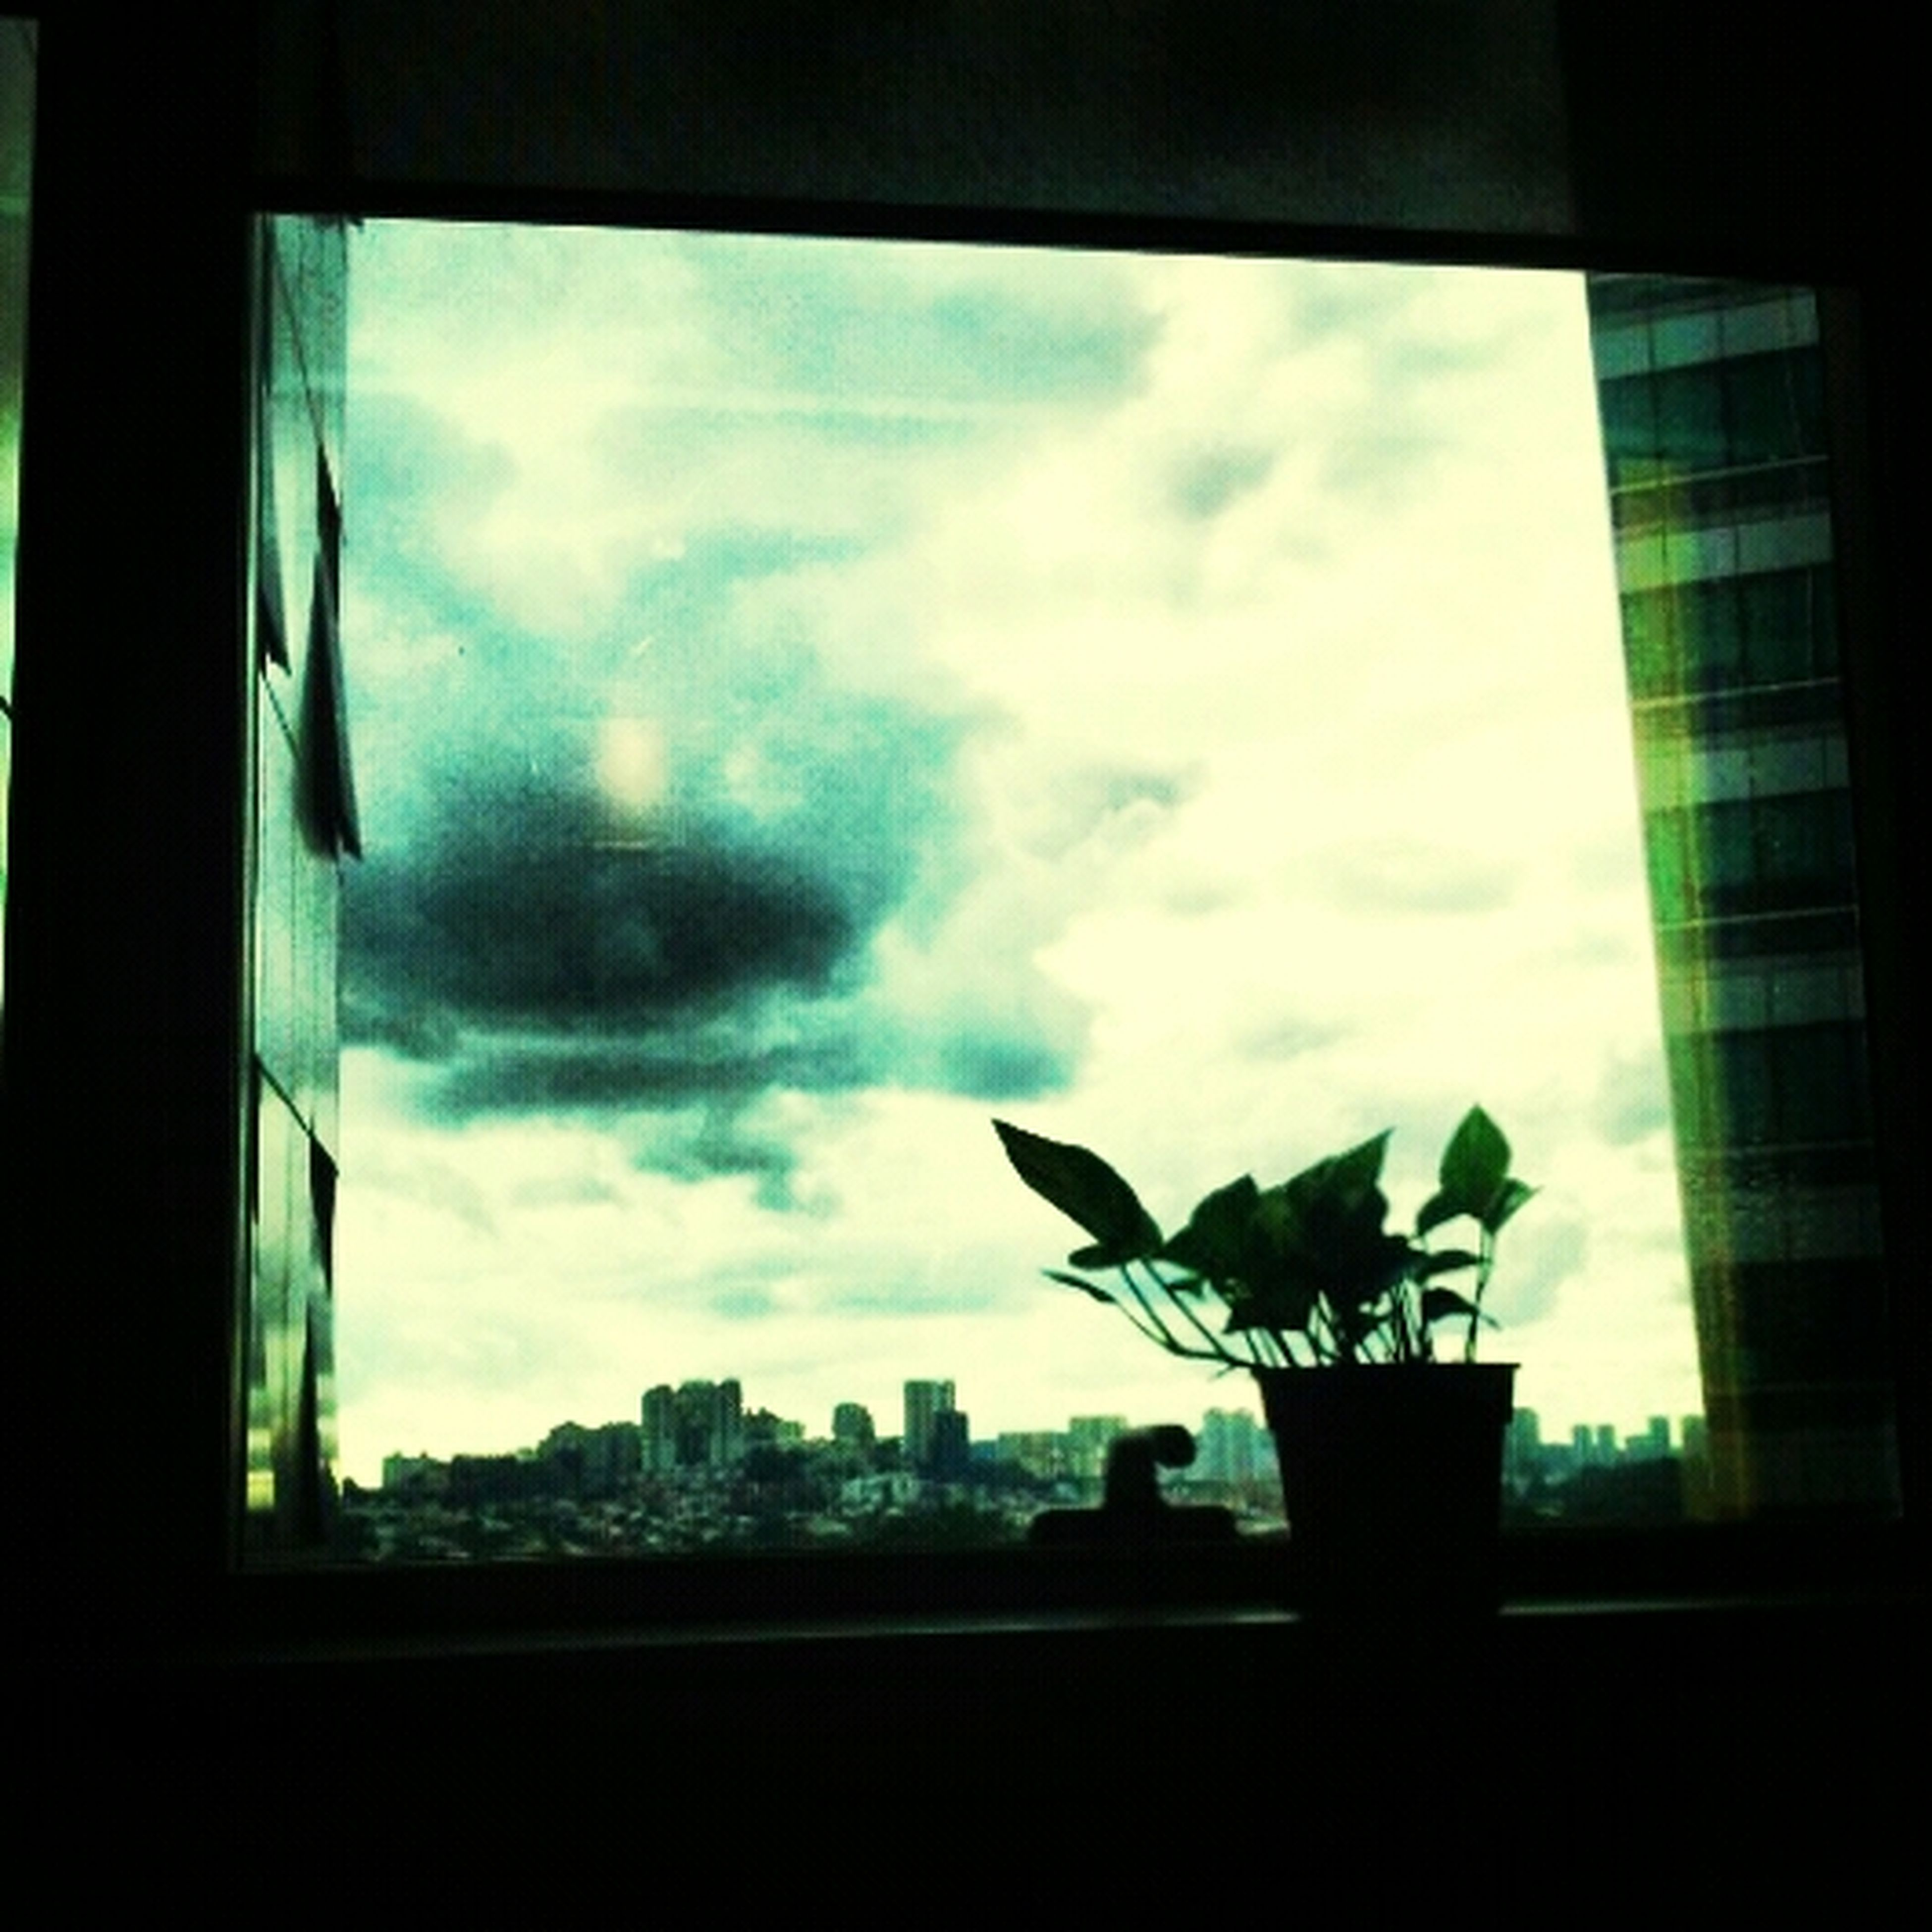 sky, architecture, built structure, cloud - sky, window, indoors, glass - material, building exterior, silhouette, low angle view, cloudy, city, cloud, transparent, building, modern, day, no people, window sill, glass